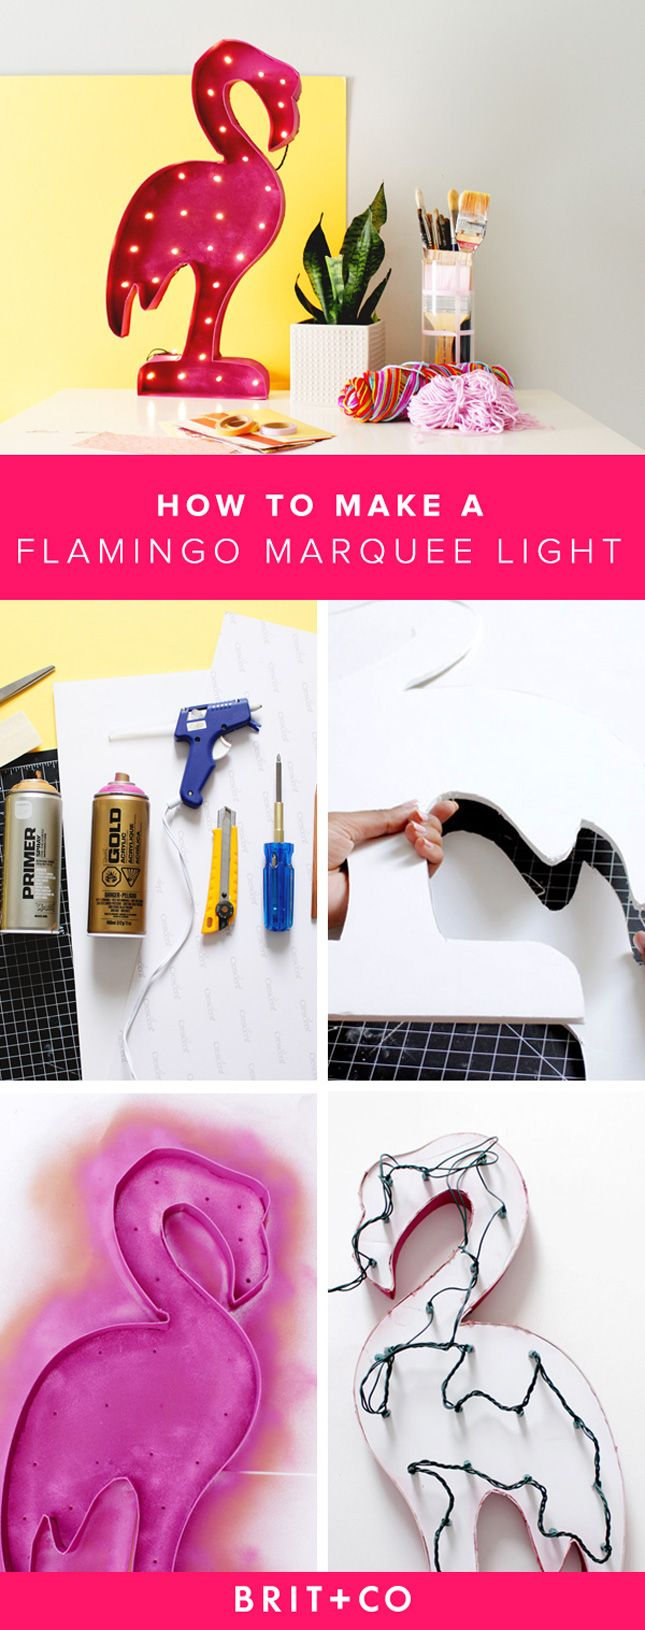 Add some color + light to your room with this super easy DIY project.